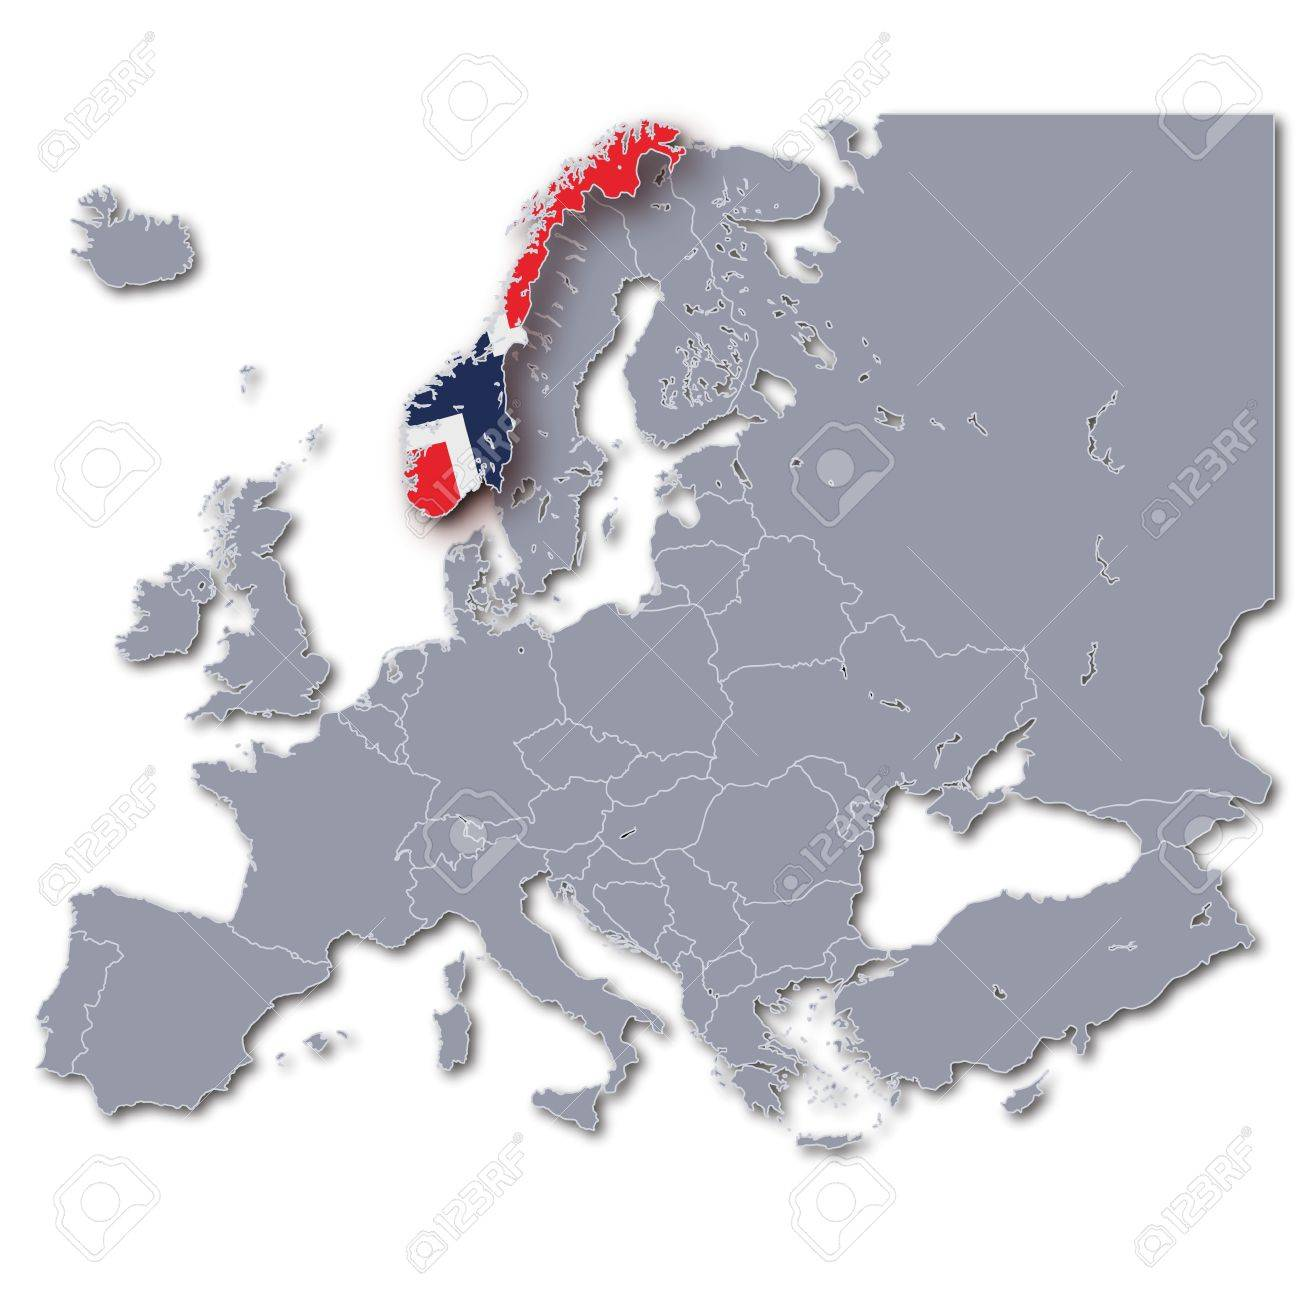 Norway On Europe Map.Europe Map Norway Stock Photo Picture And Royalty Free Image Image